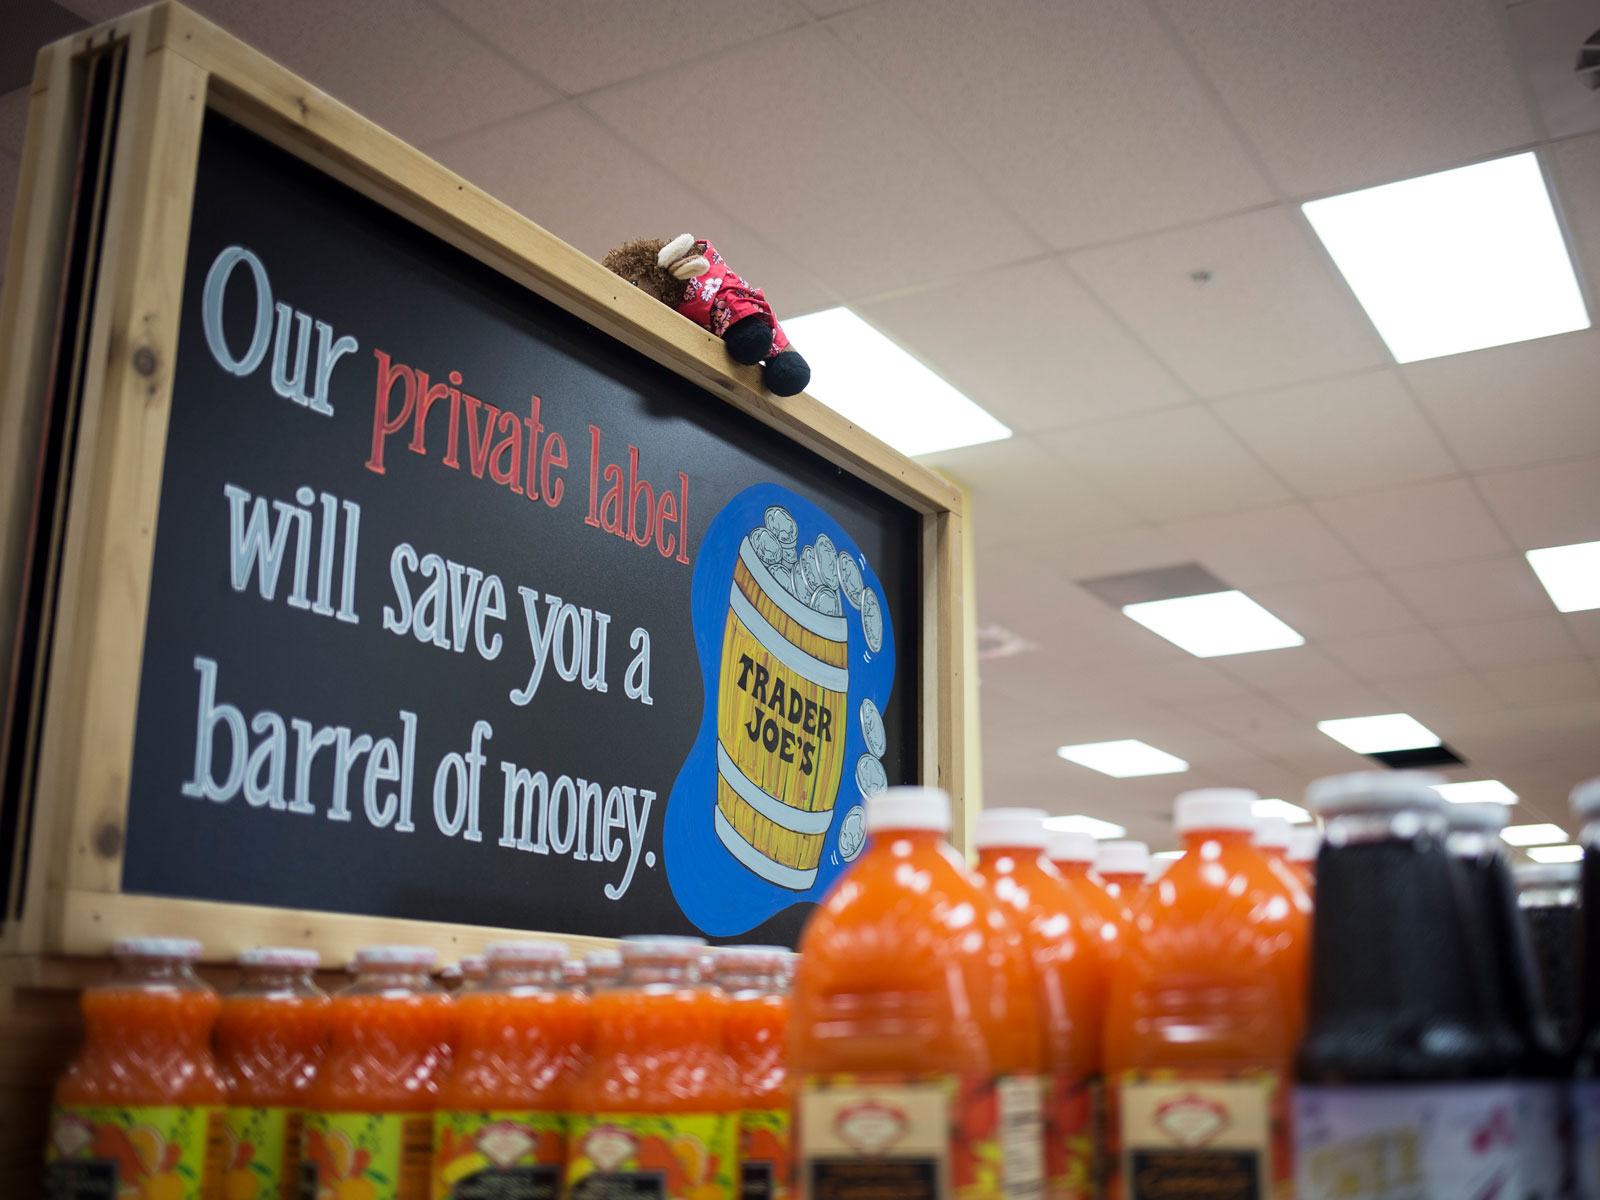 The Grocery Stores With the Best Prices and Private Label Products, According to Consumer Reports